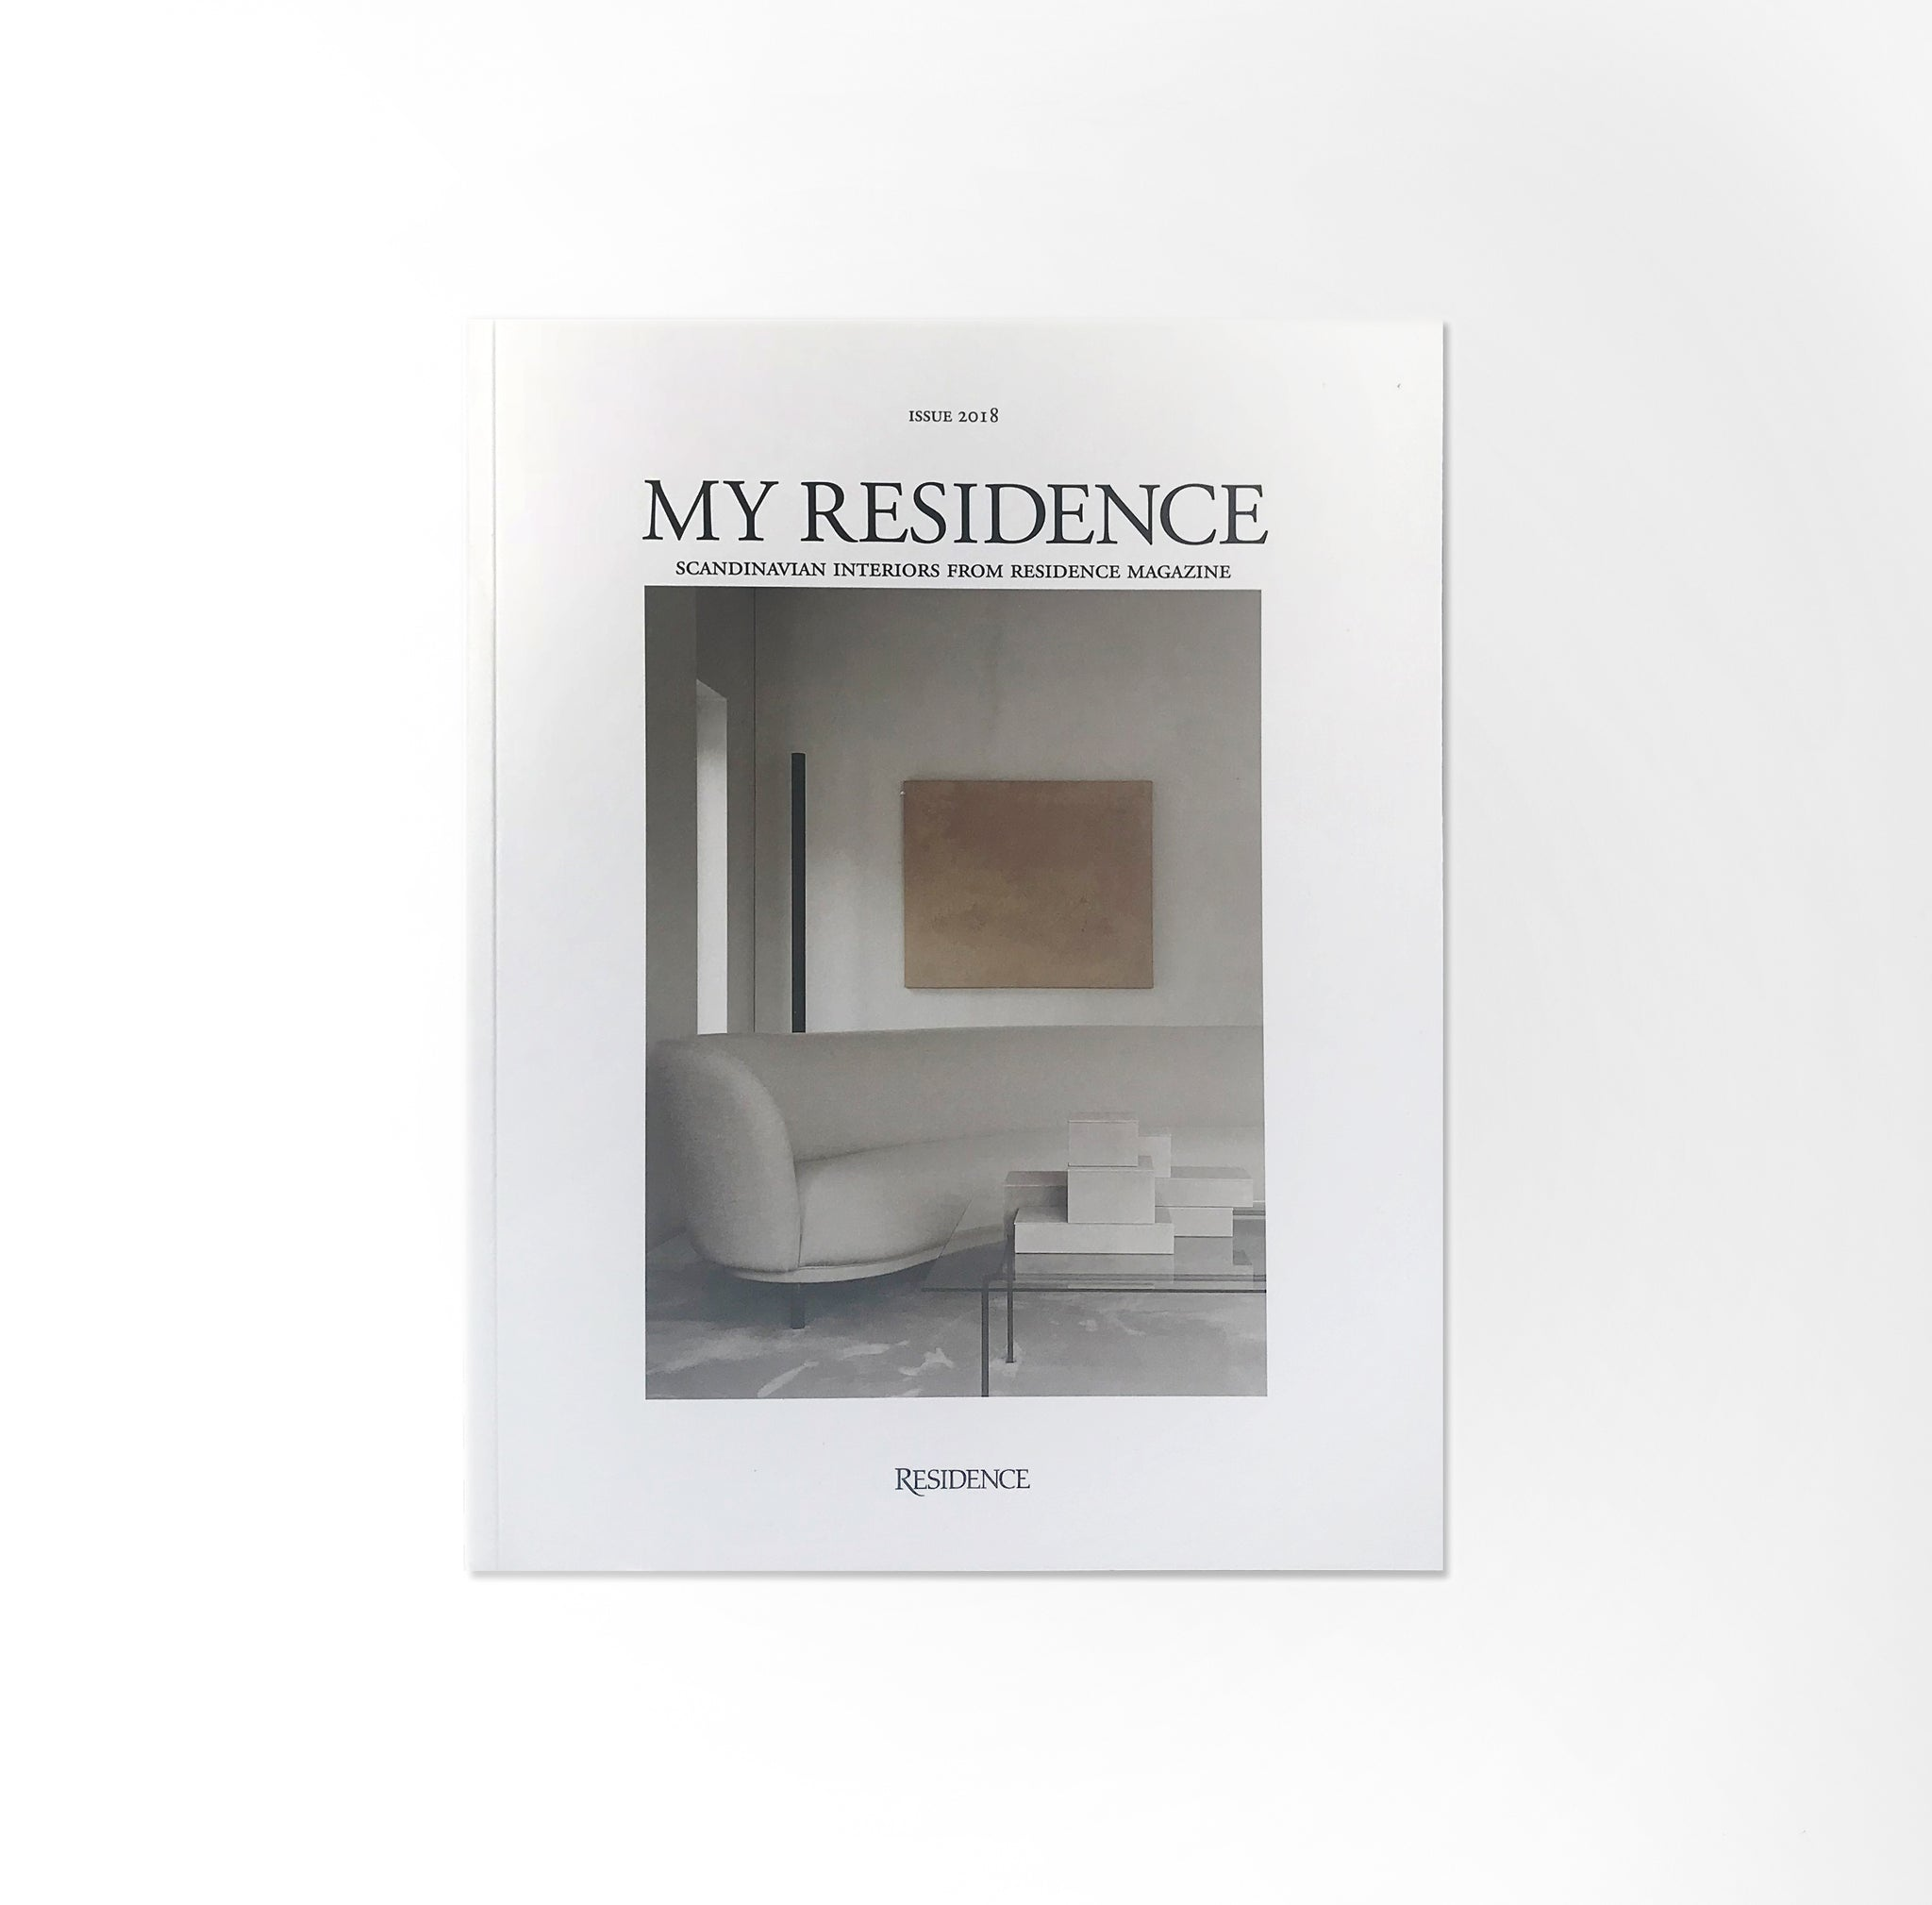 My Residence Issue 2018 - Unrecorded